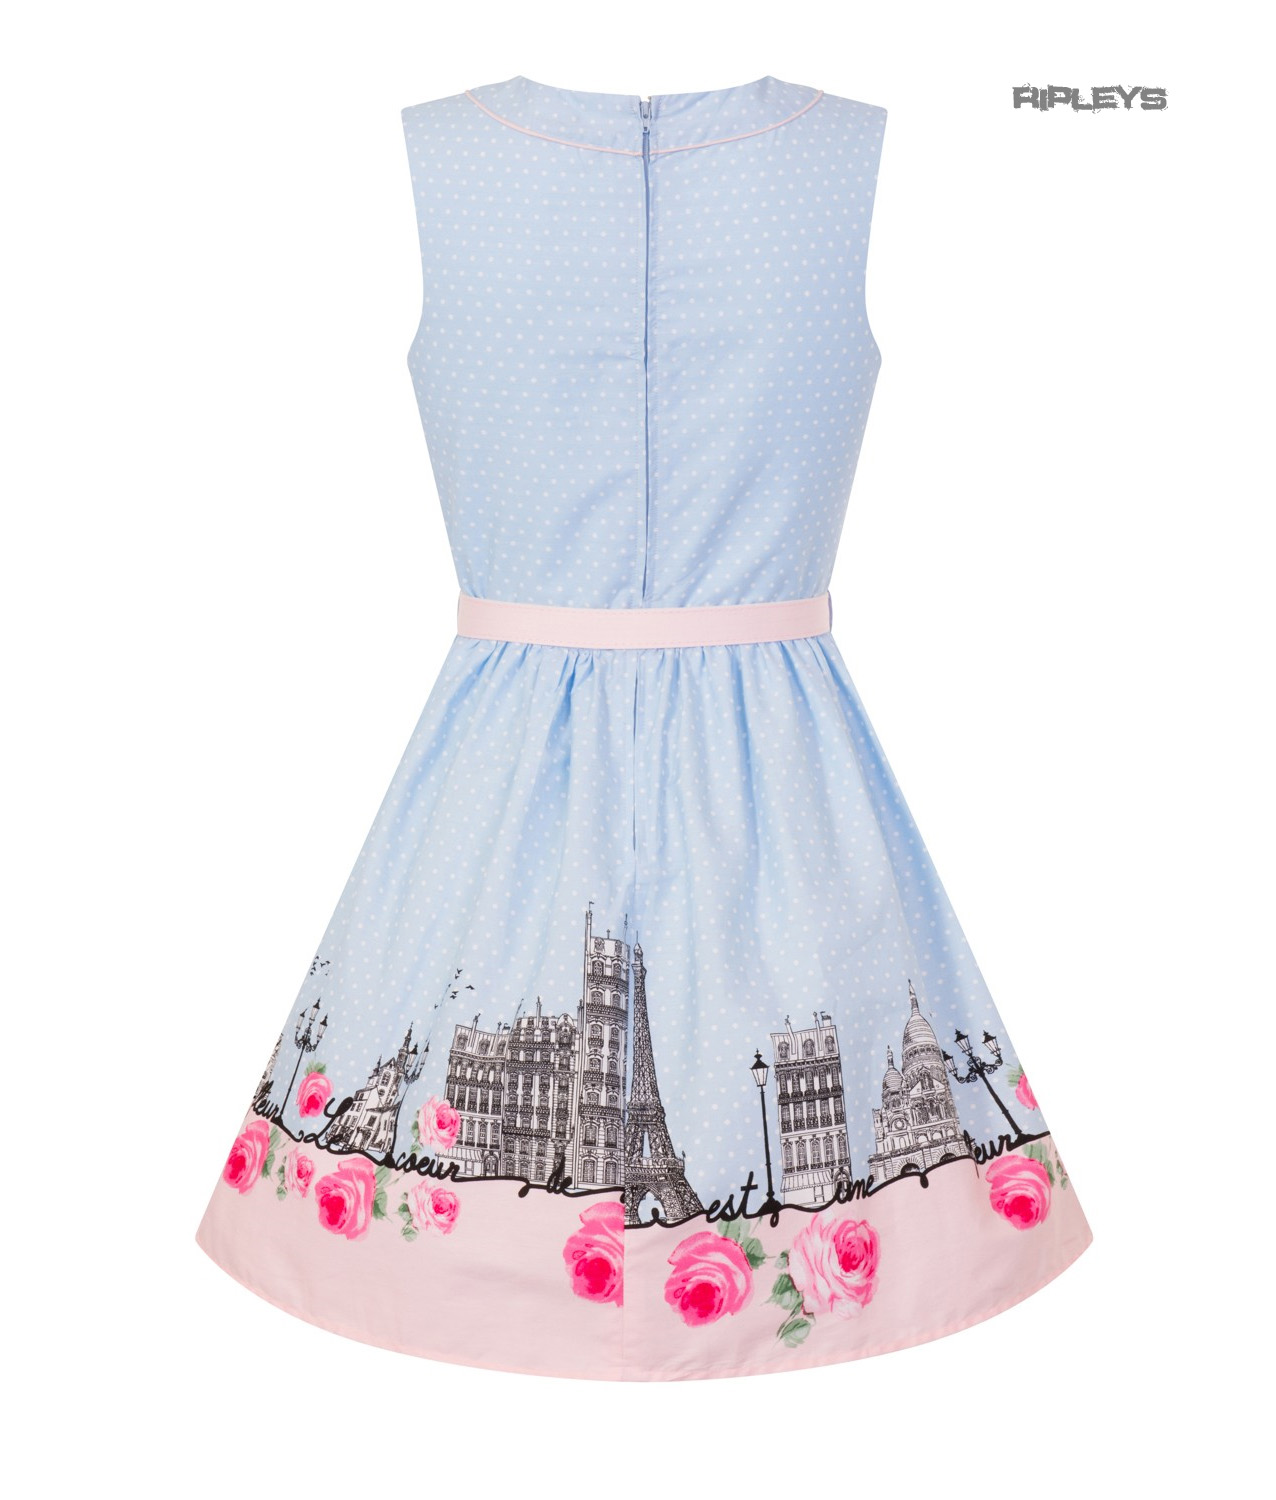 Hell-Bunny-50s-Vintage-Blue-Polka-Dot-PANAME-Mini-Dress-Paris-All-Sizes thumbnail 6